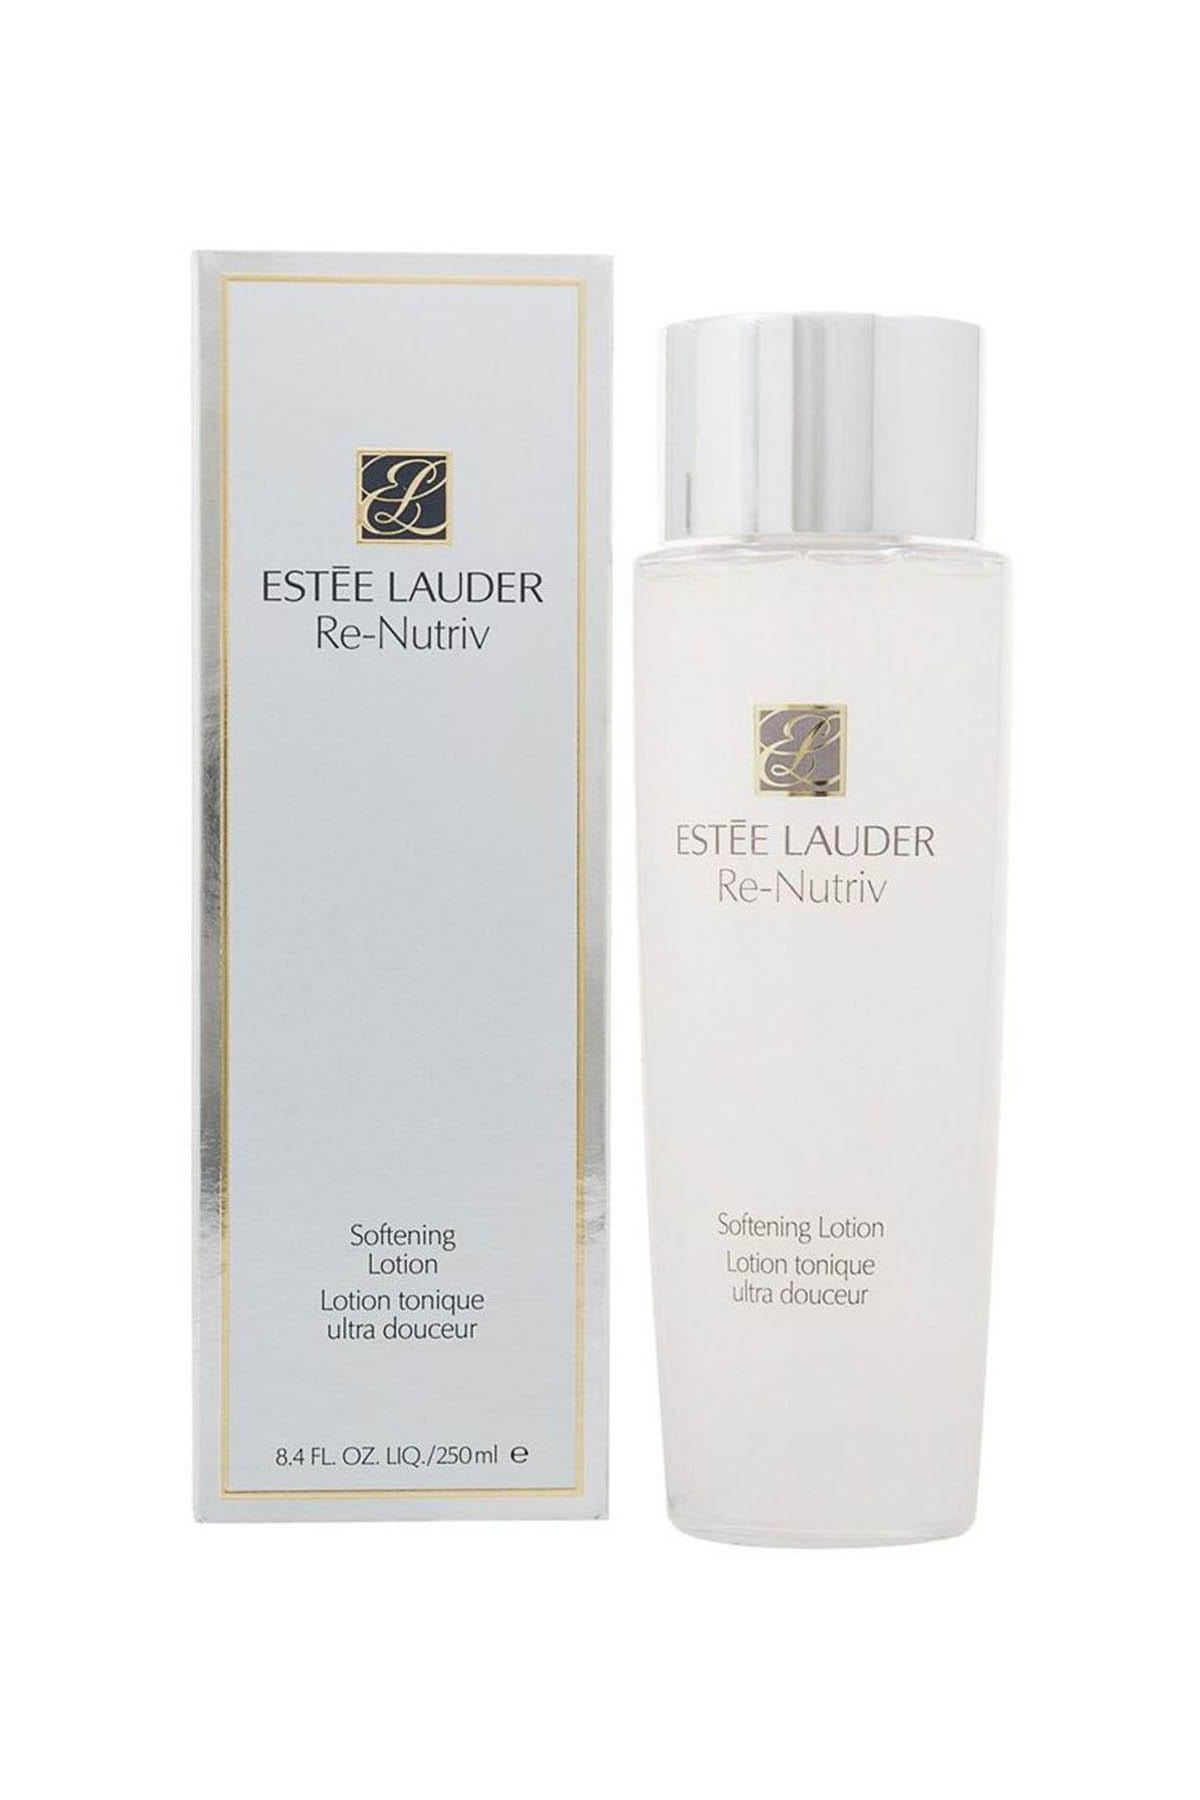 Estee Lauder Temizleyici Losyon - Re-Nutriv Softening Lotion 250 ml 027131208709 1